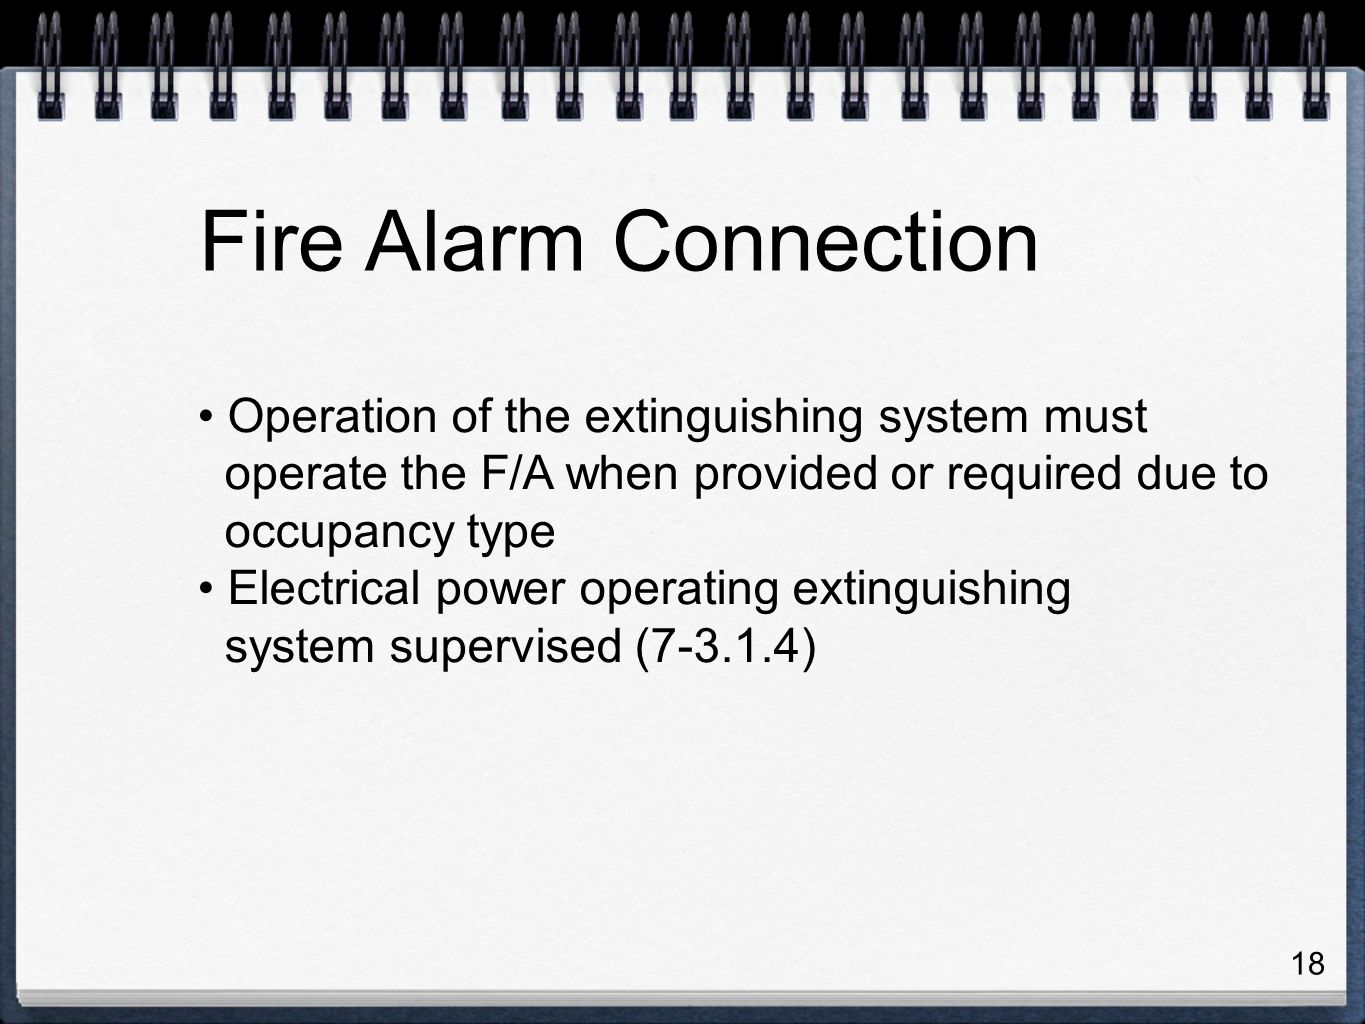 18 Operation of the extinguishing system must operate the F/A when provided or required due to occupancy type Electrical power operating extinguishing system supervised (7-3.1.4) Fire Alarm Connection